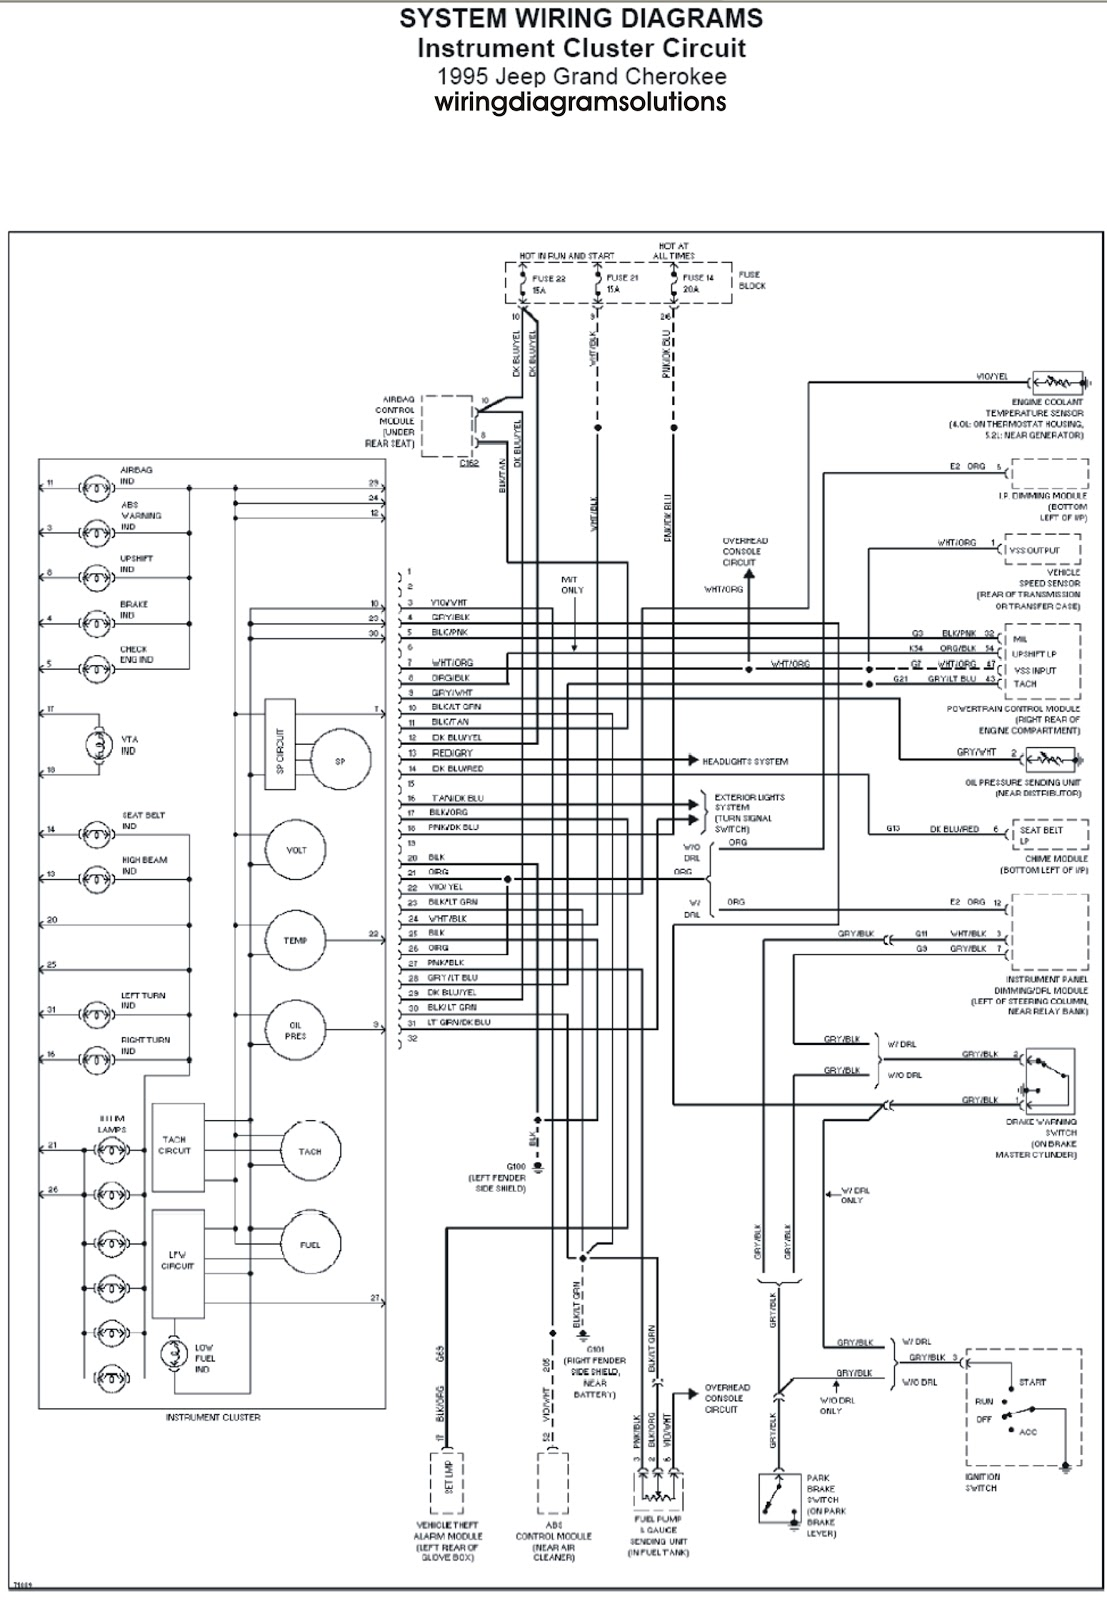 99 Caravan Wiring Diagram Worksheet And Dodge Radio Instrument Cluster List Of Rh 73 Codingcommunity De 98 Grand